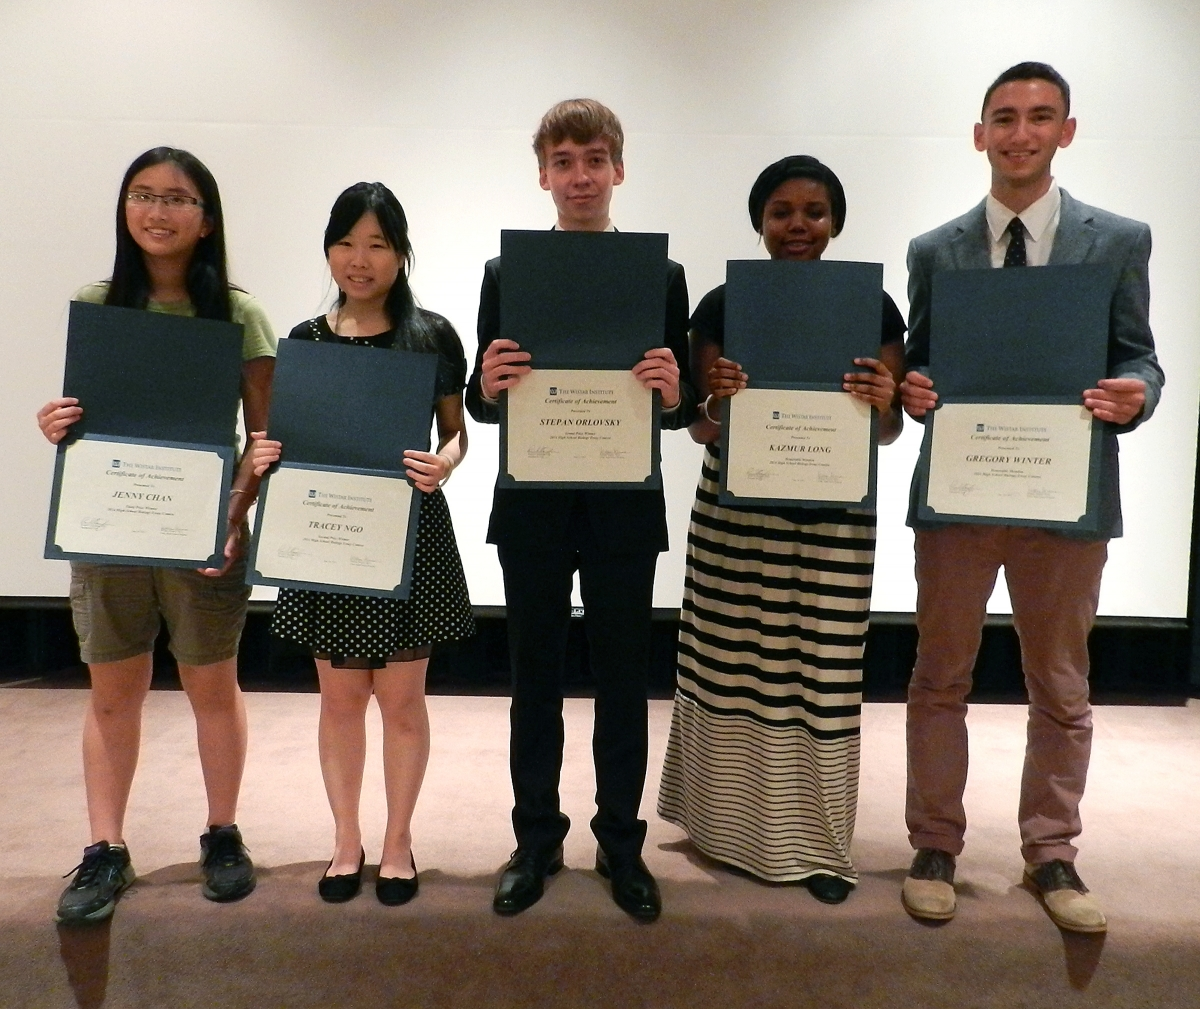 Winners of the 2014 Annual Biology Essay Contest